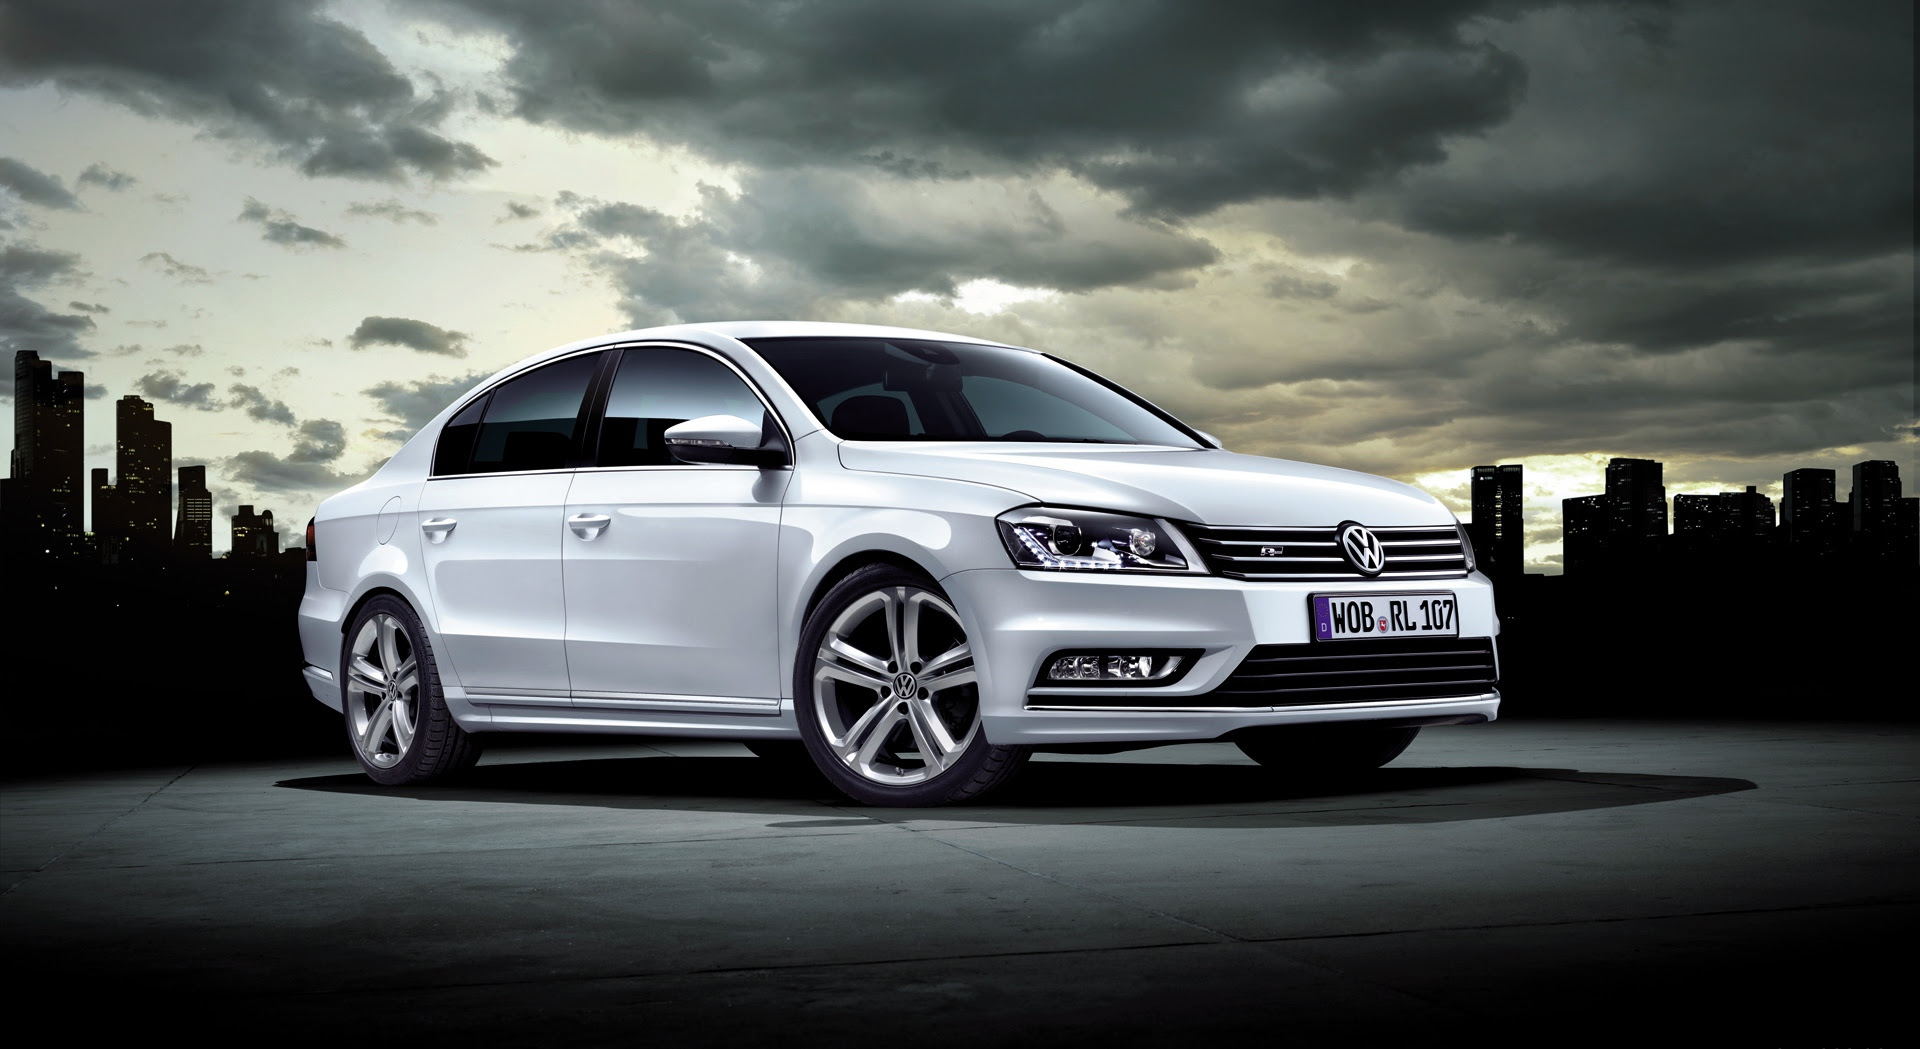 volkswagen passat r line  HD Desktop Wallpapers  4k HD